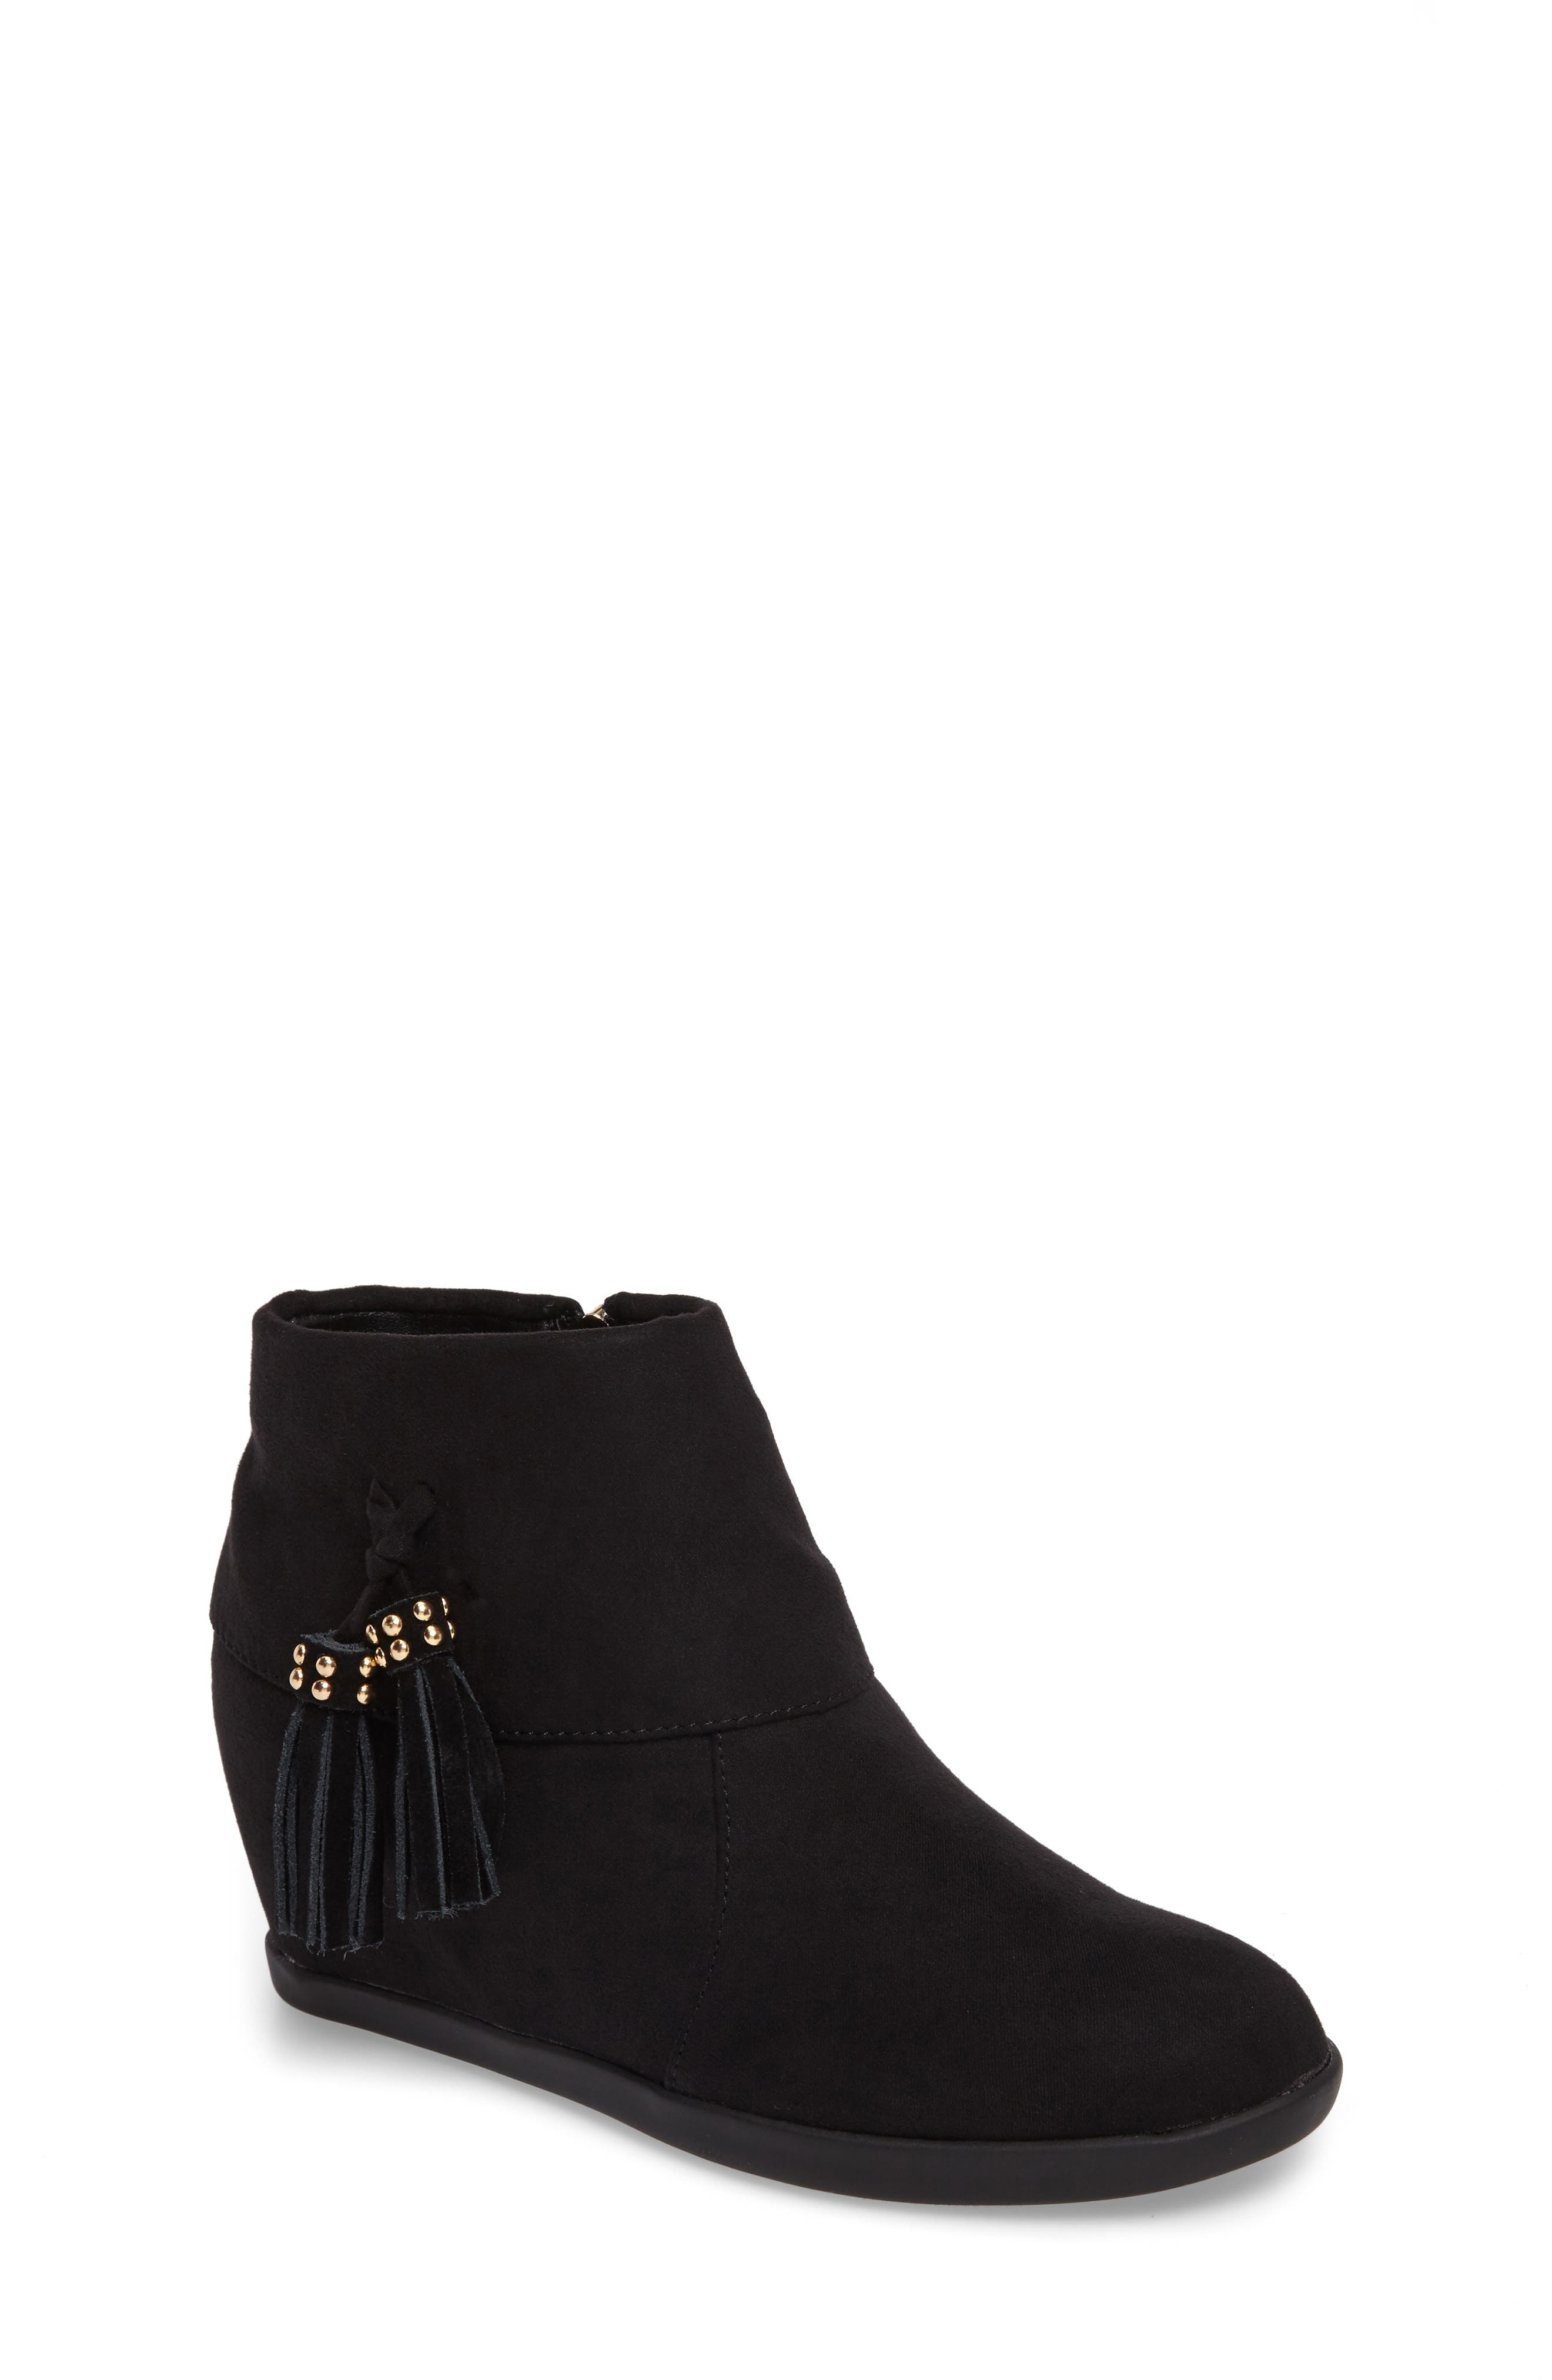 Valentina Cuff Concealed Wedge Bootie,                         Main,                         color, 001